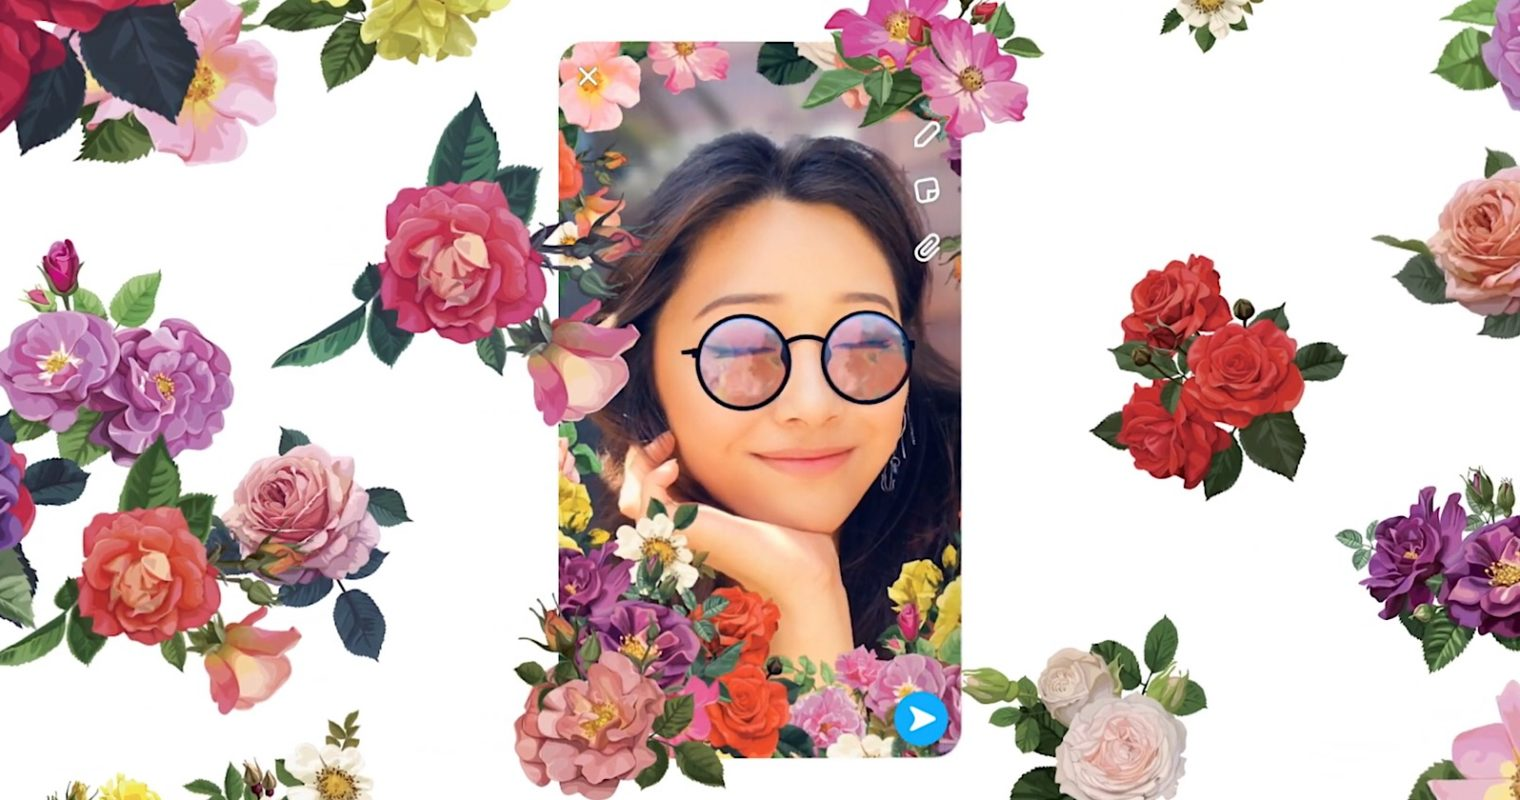 Snapchat Introduces 3D Effects for Selfies